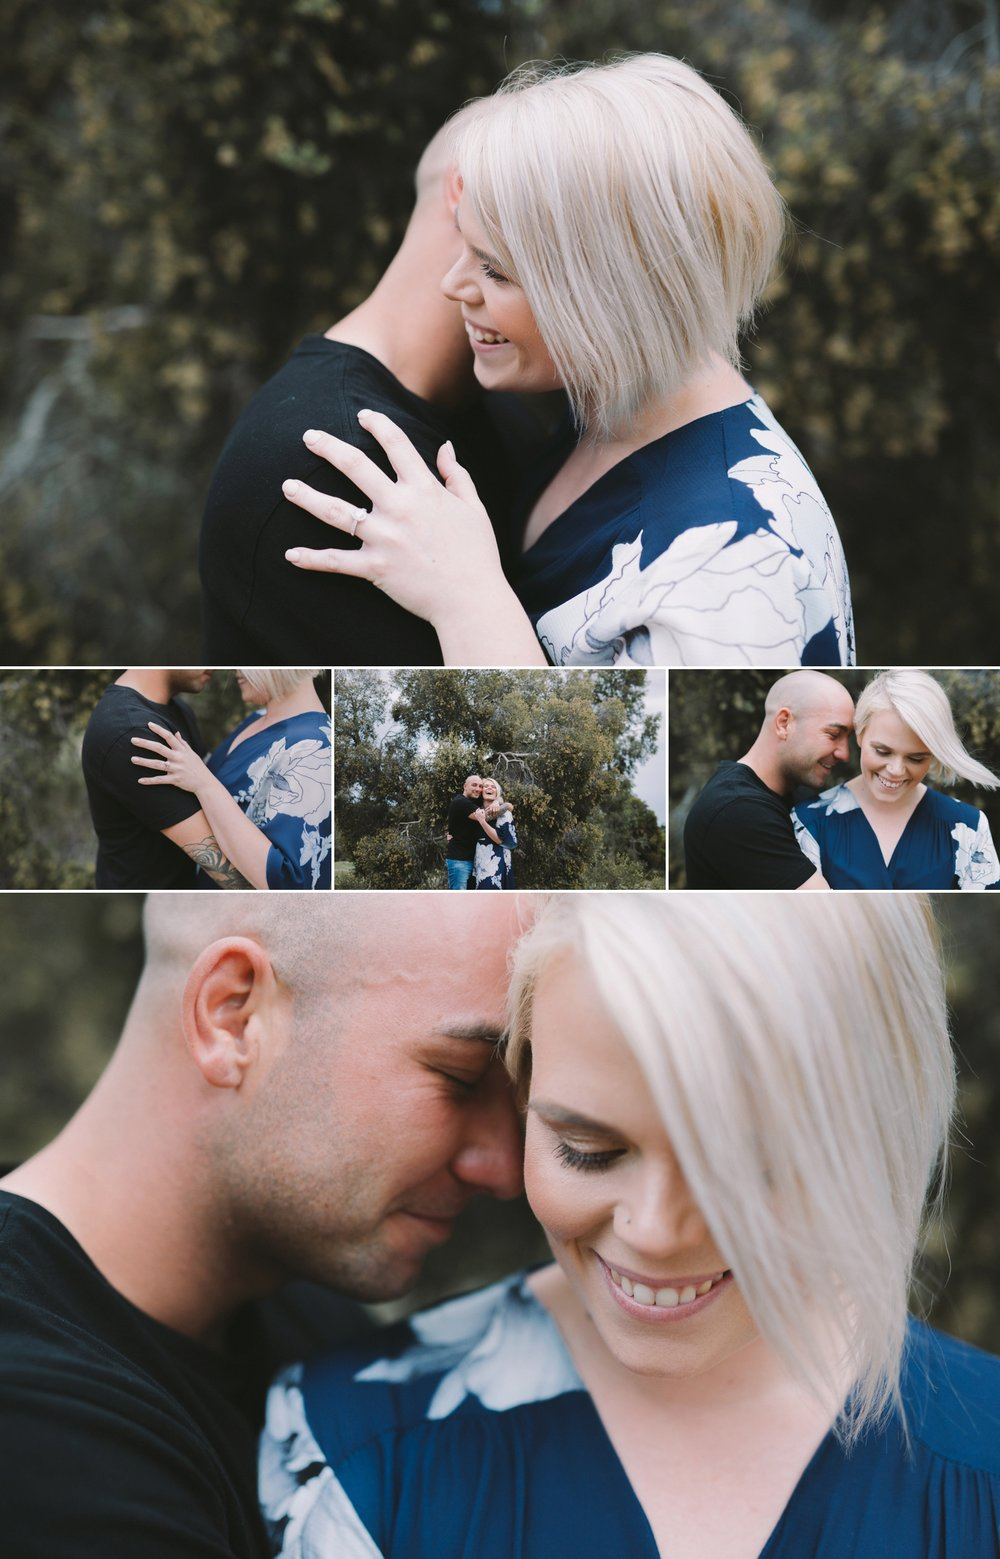 Georgia and Chris - Natural engagement photographer in Adelaide - www.katherineschultzphotography.com 2